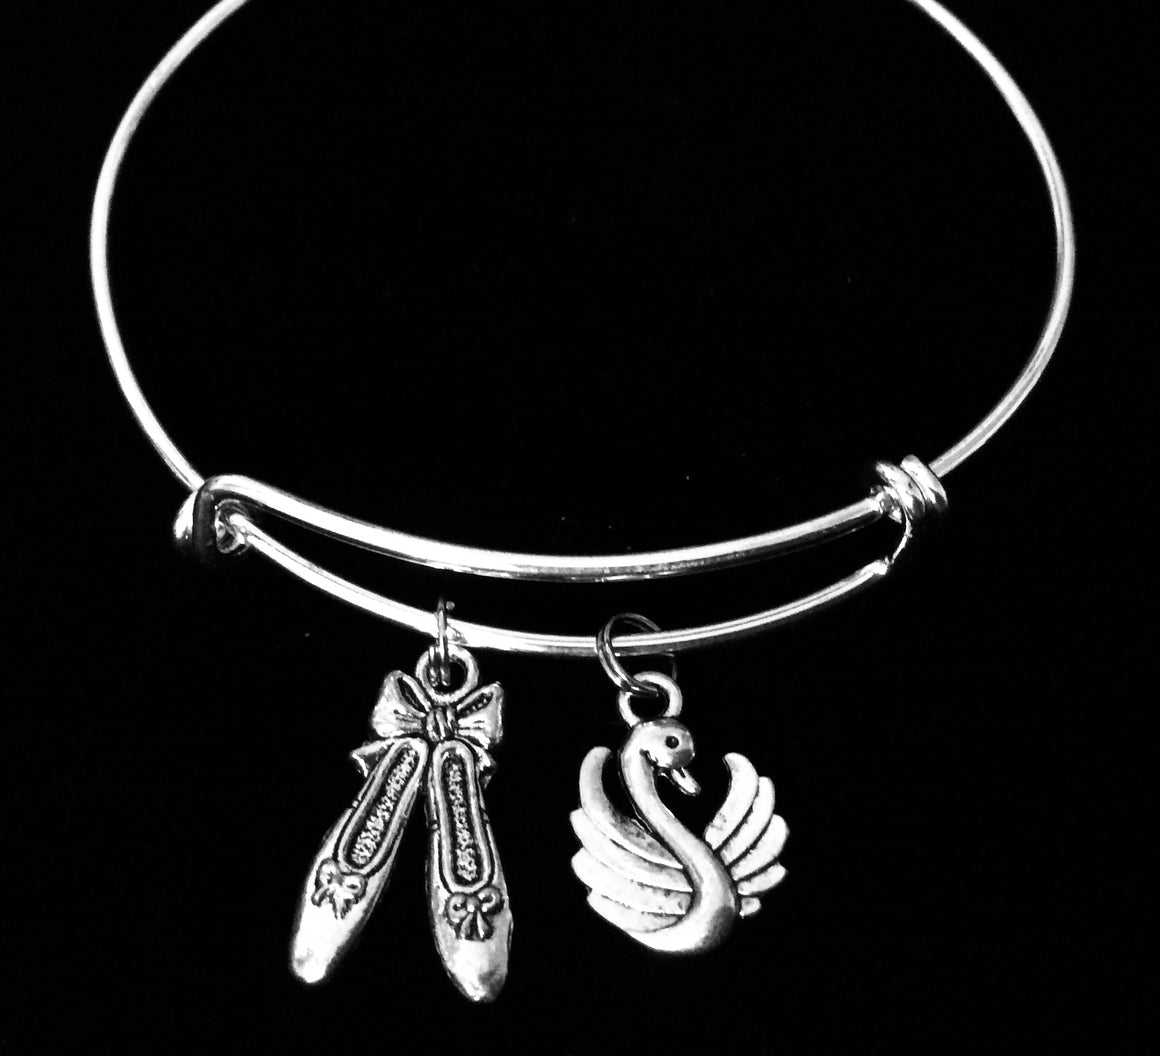 Ballerina Shoes and Swan Expandable Charm Bracelet Adjustable Bangle One Size Fits All Gift